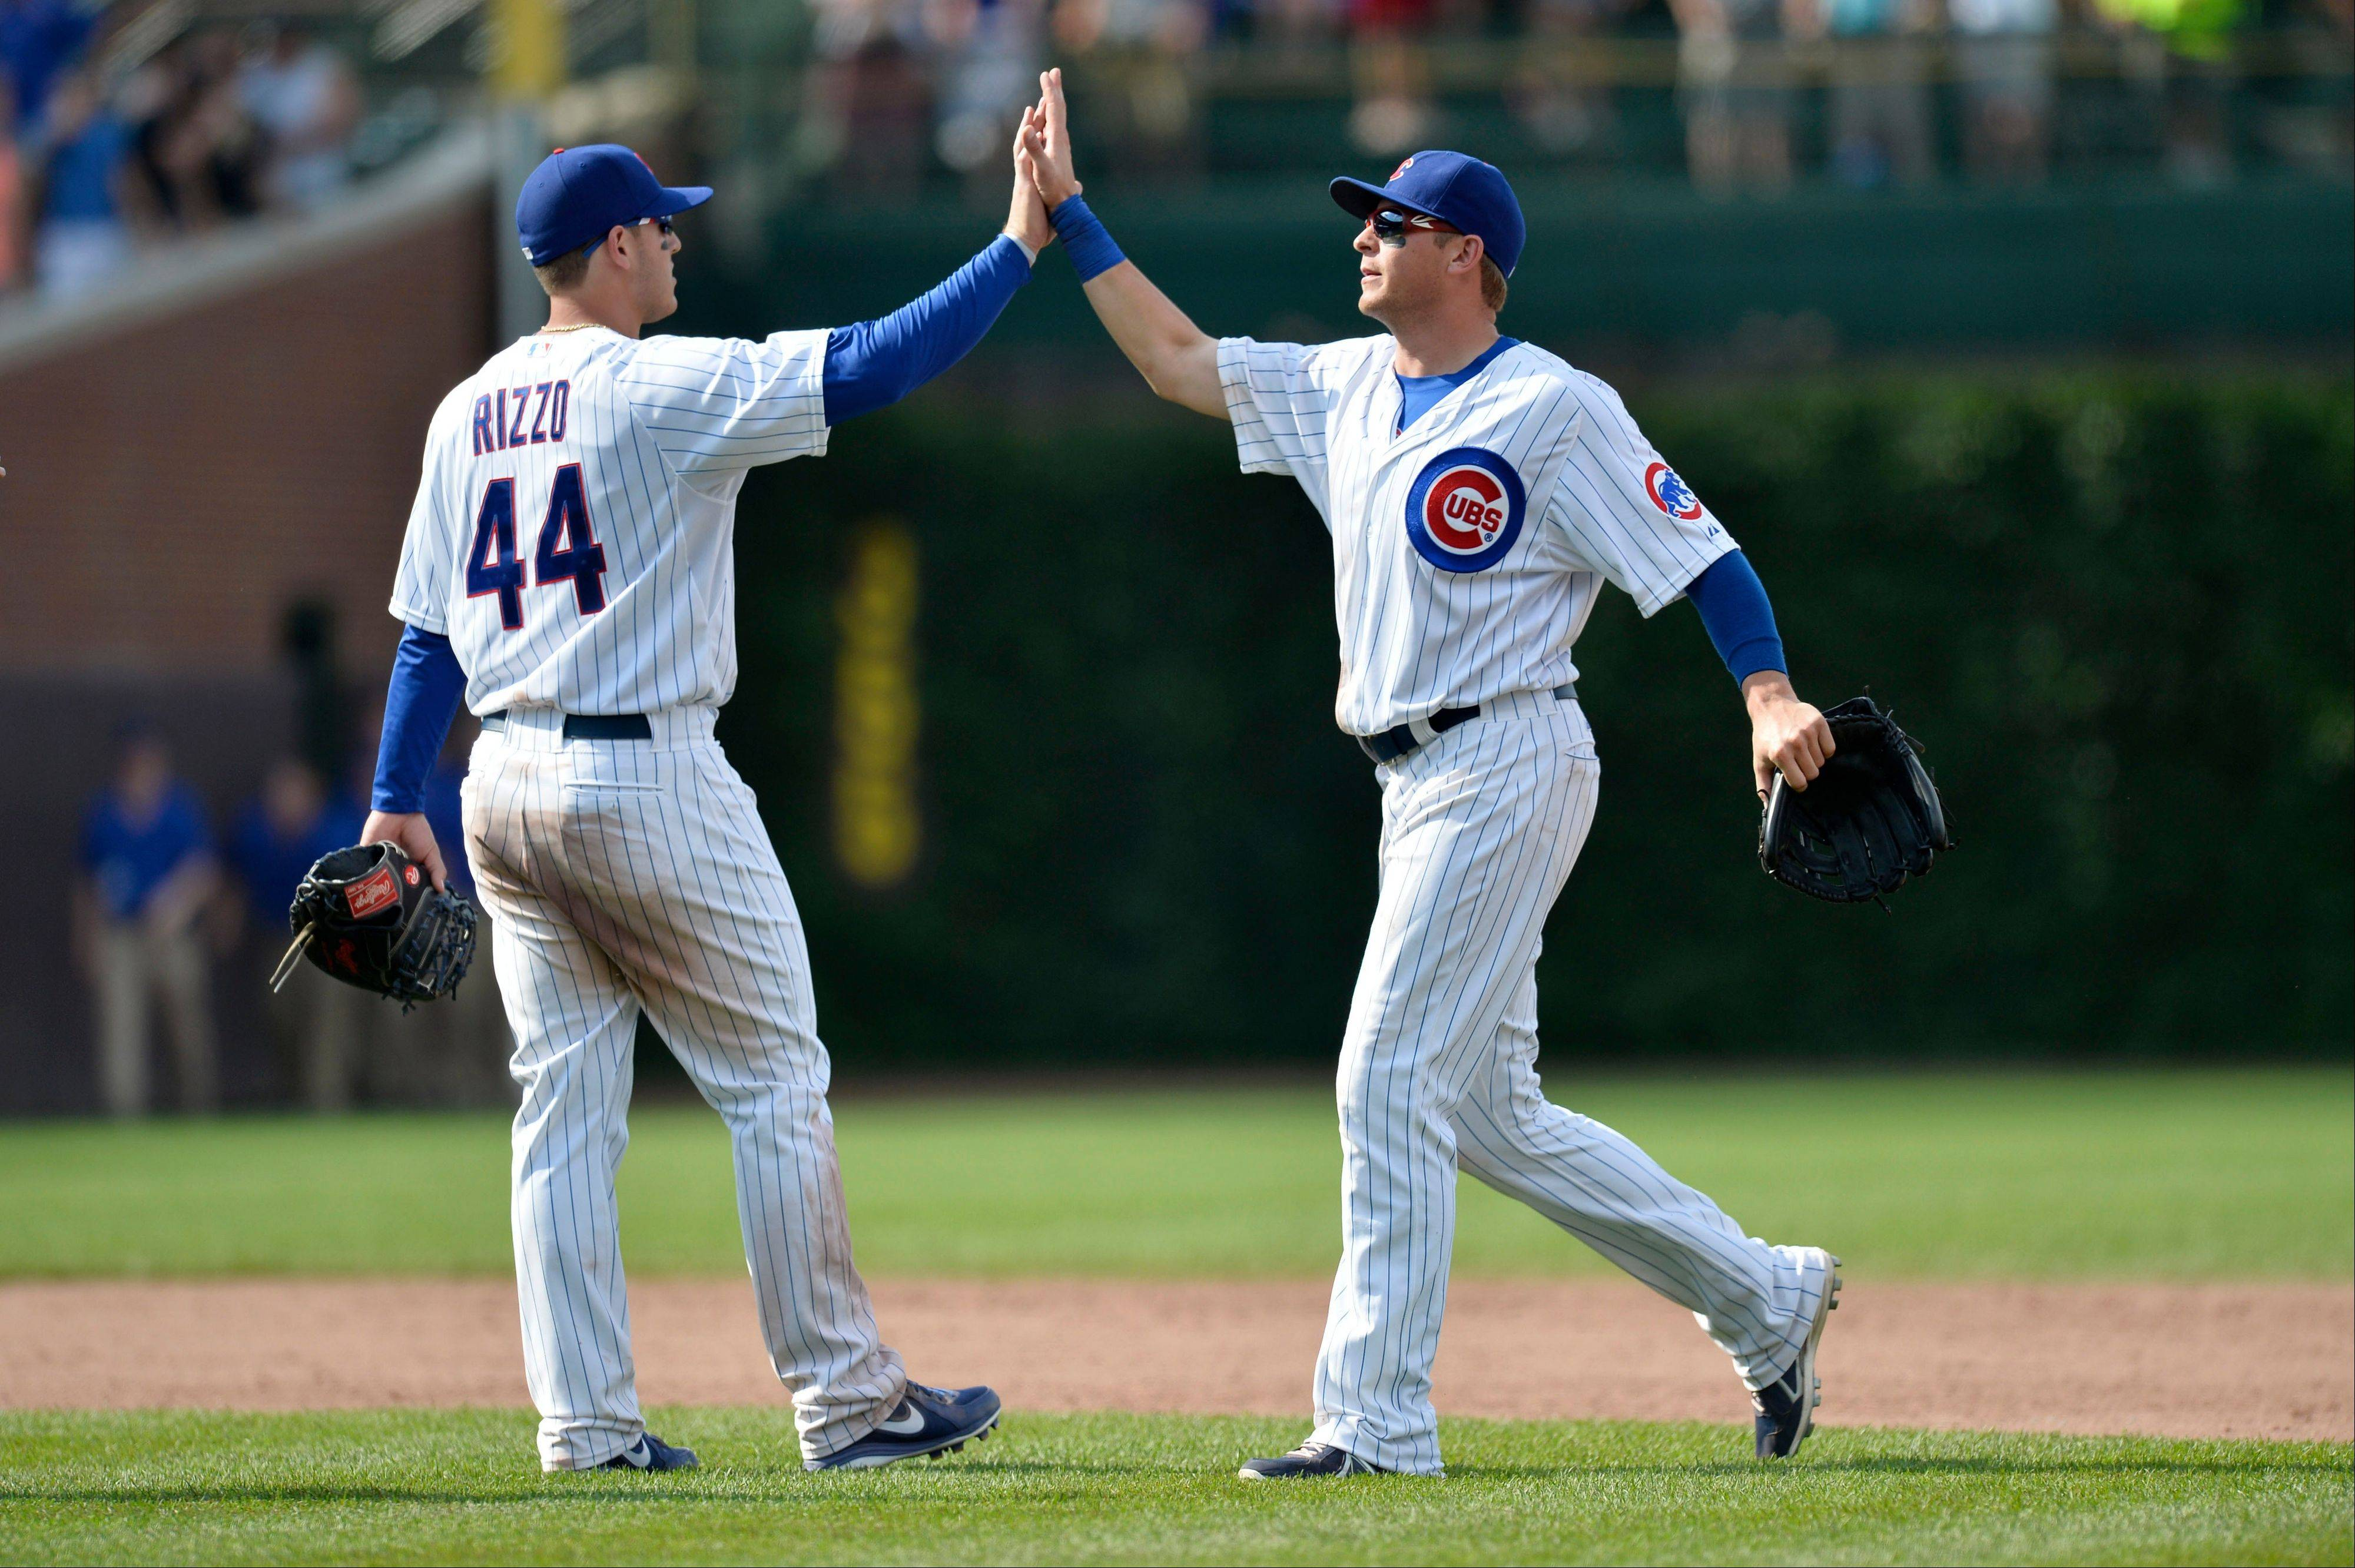 Cubs first baseman Anthony Rizzo, left, and center fielder Ryan Sweeney celebrate a 14-6 win over the Houston Astros in an interleague baseball game on Sunday, June 23, 2013, in Chicago.